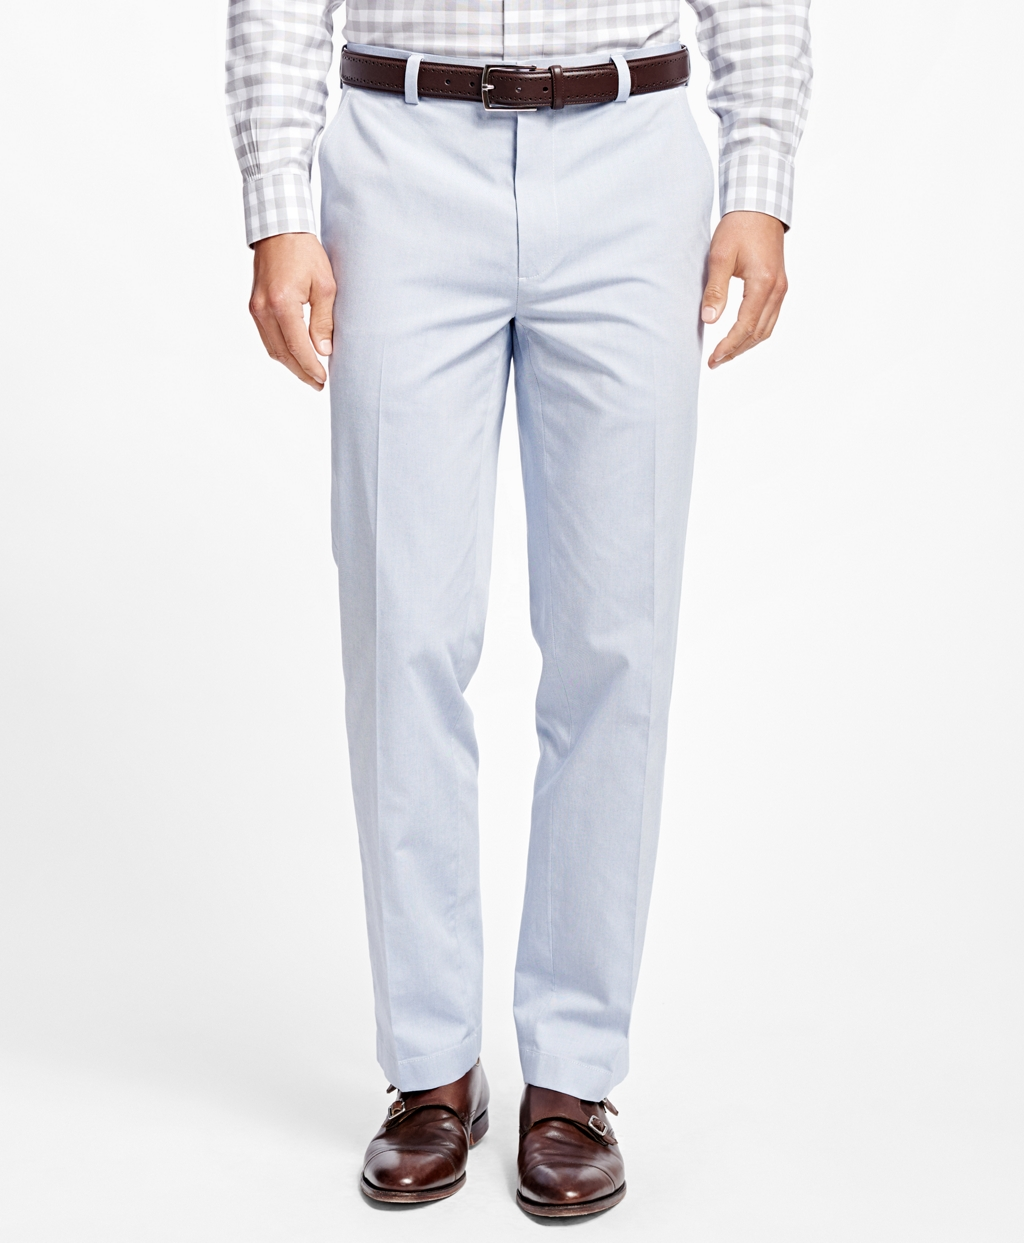 Non-Iron Clark Fit Supima® Cotton Oxford Chinos – summer dress pants for men